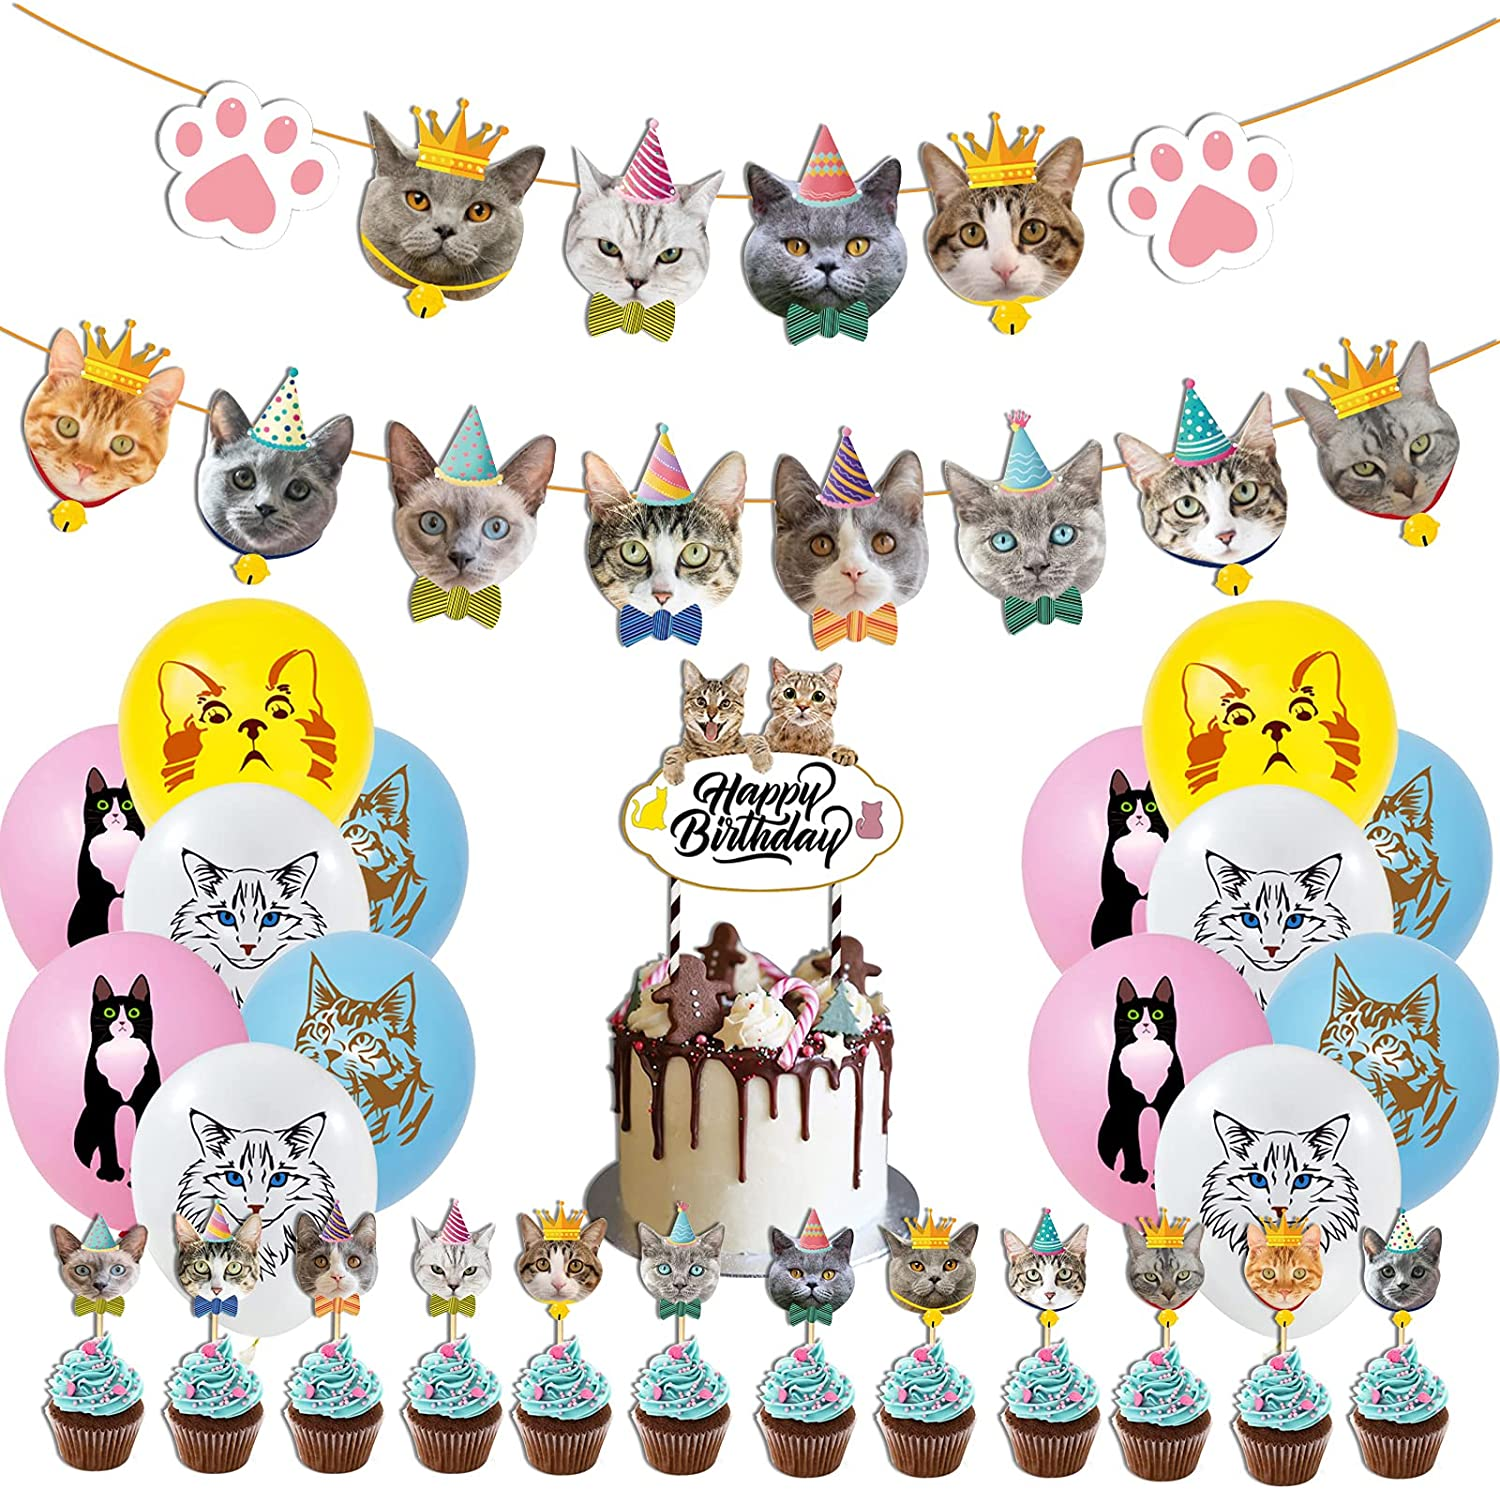 Cute Cat Birthday Party Supplies 46PCS Kawaii Meow Pet Decors for Boys Girls Including Cats Face Banner 1PC, Cupcake Toppers 24PCS, Colorful Aesthetical Balloons 20PCS, Big Cake Topper 1PC Cats Decors for Kids Adults